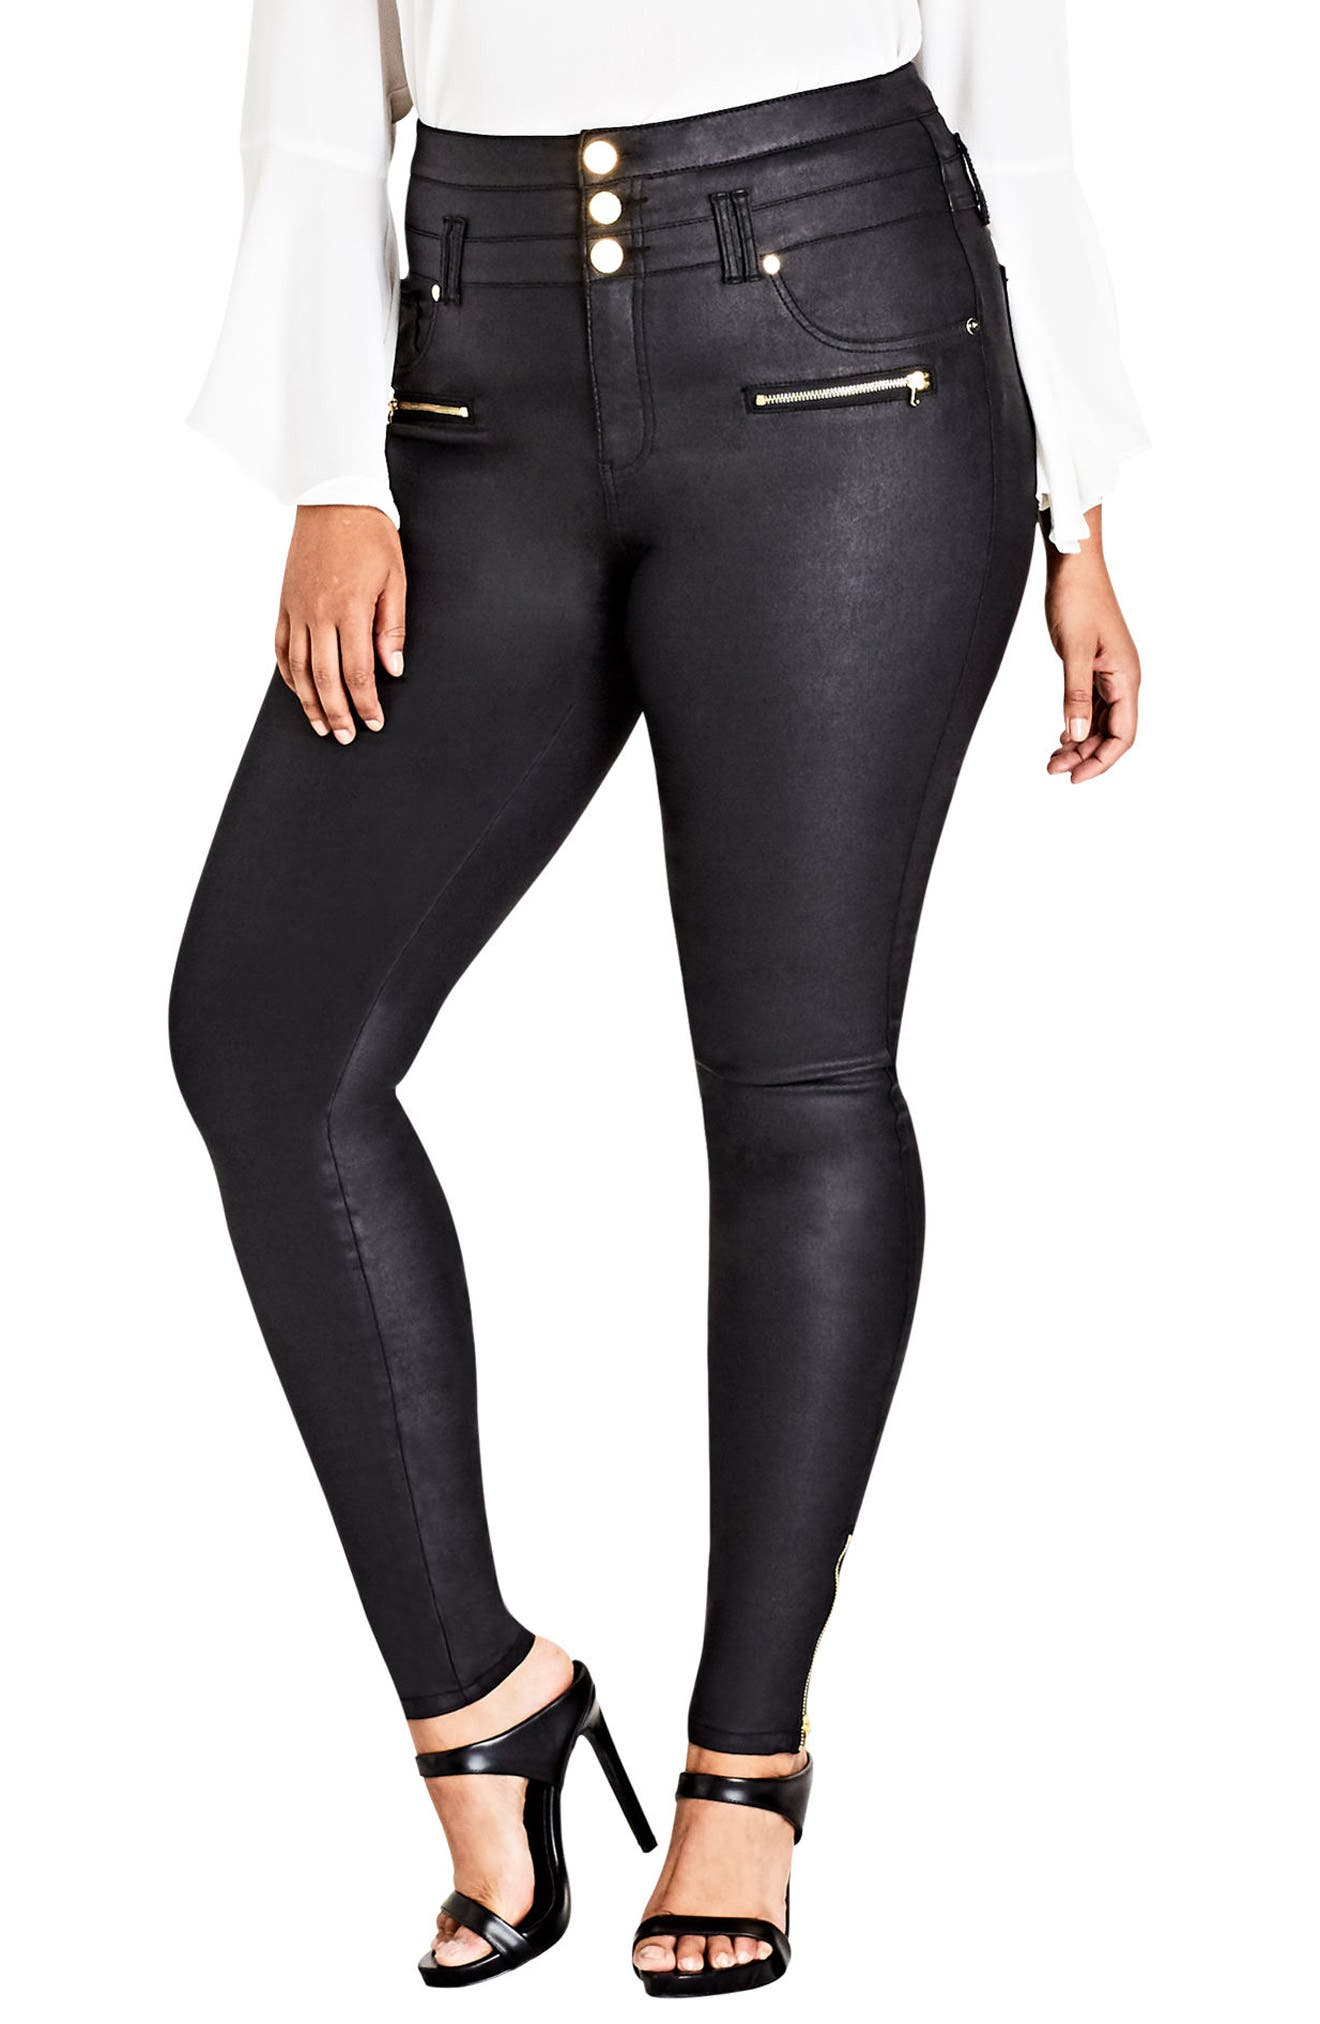 Main Image - City Chic Pick Me Up Stretch Skinny Jeans (Plus Size)